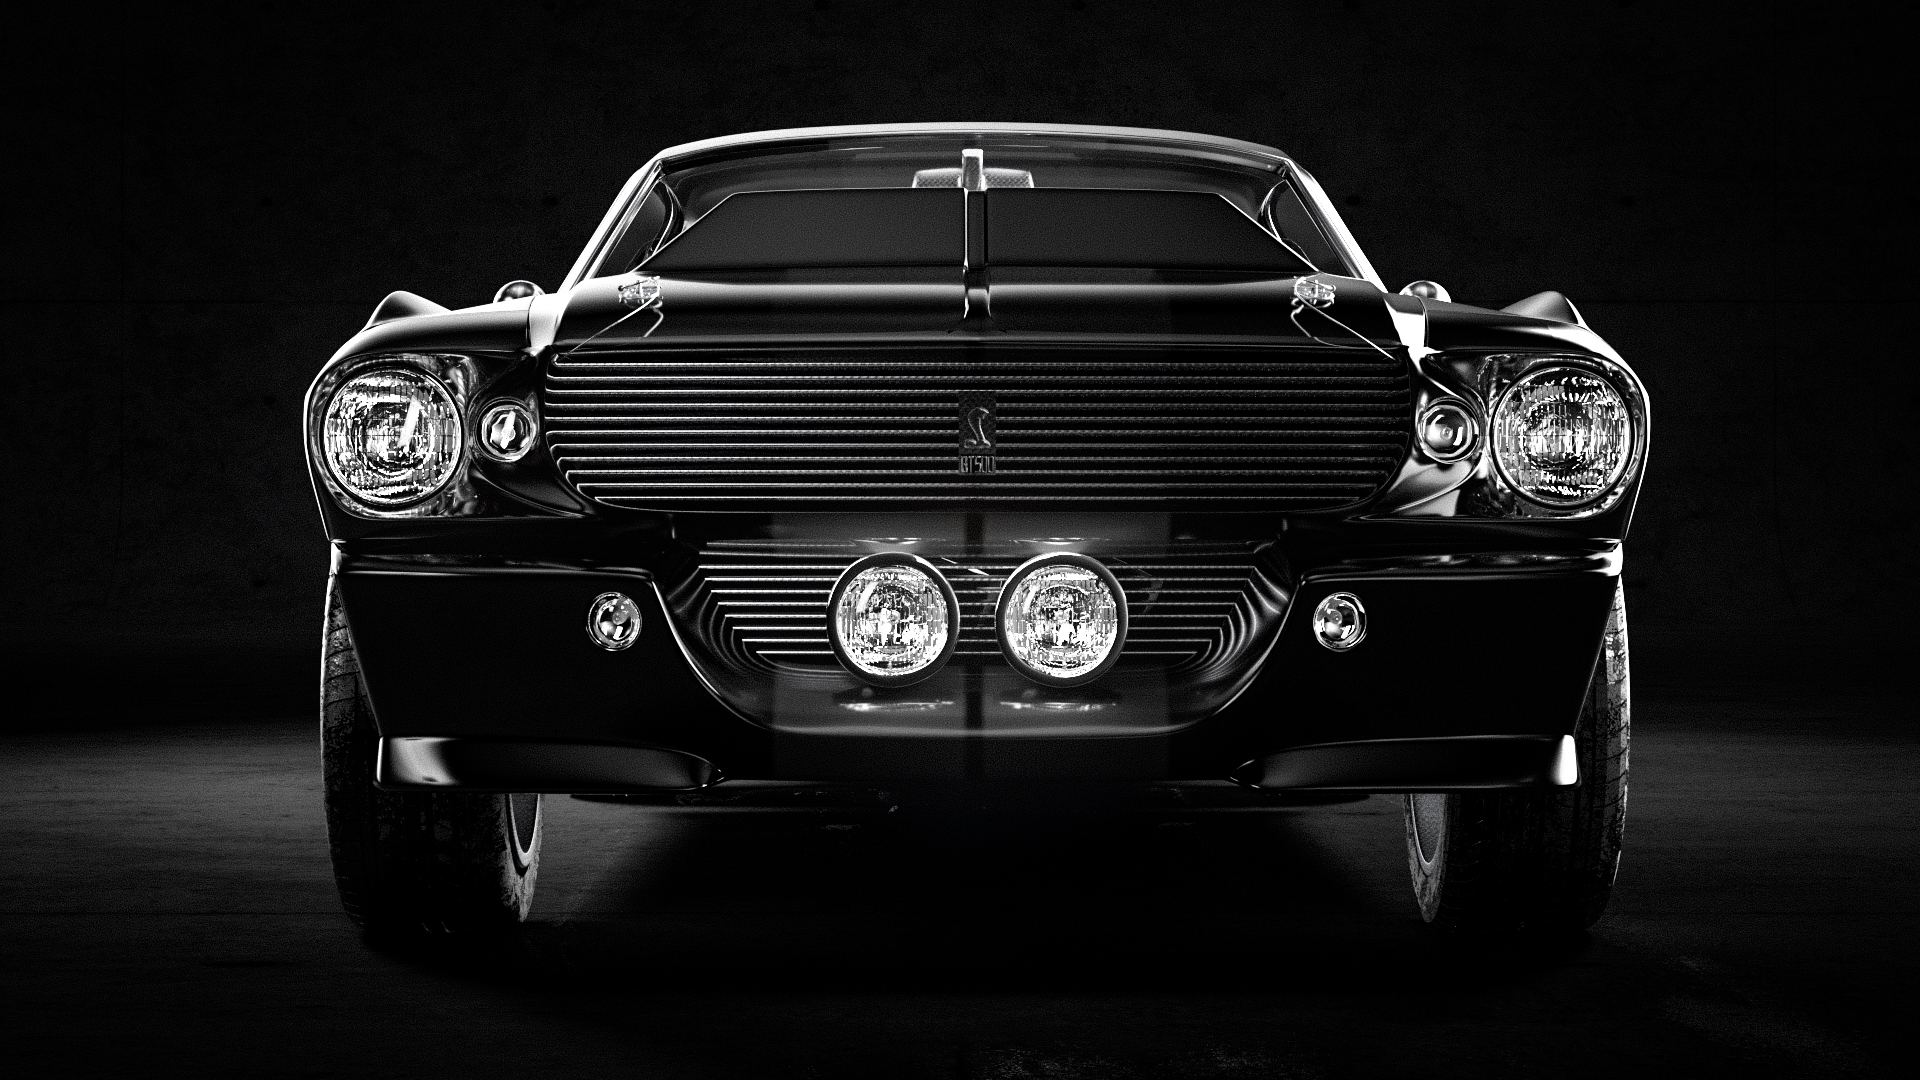 Shelby_Eleanor_blackandWhite_photography (1 of 3).jpg